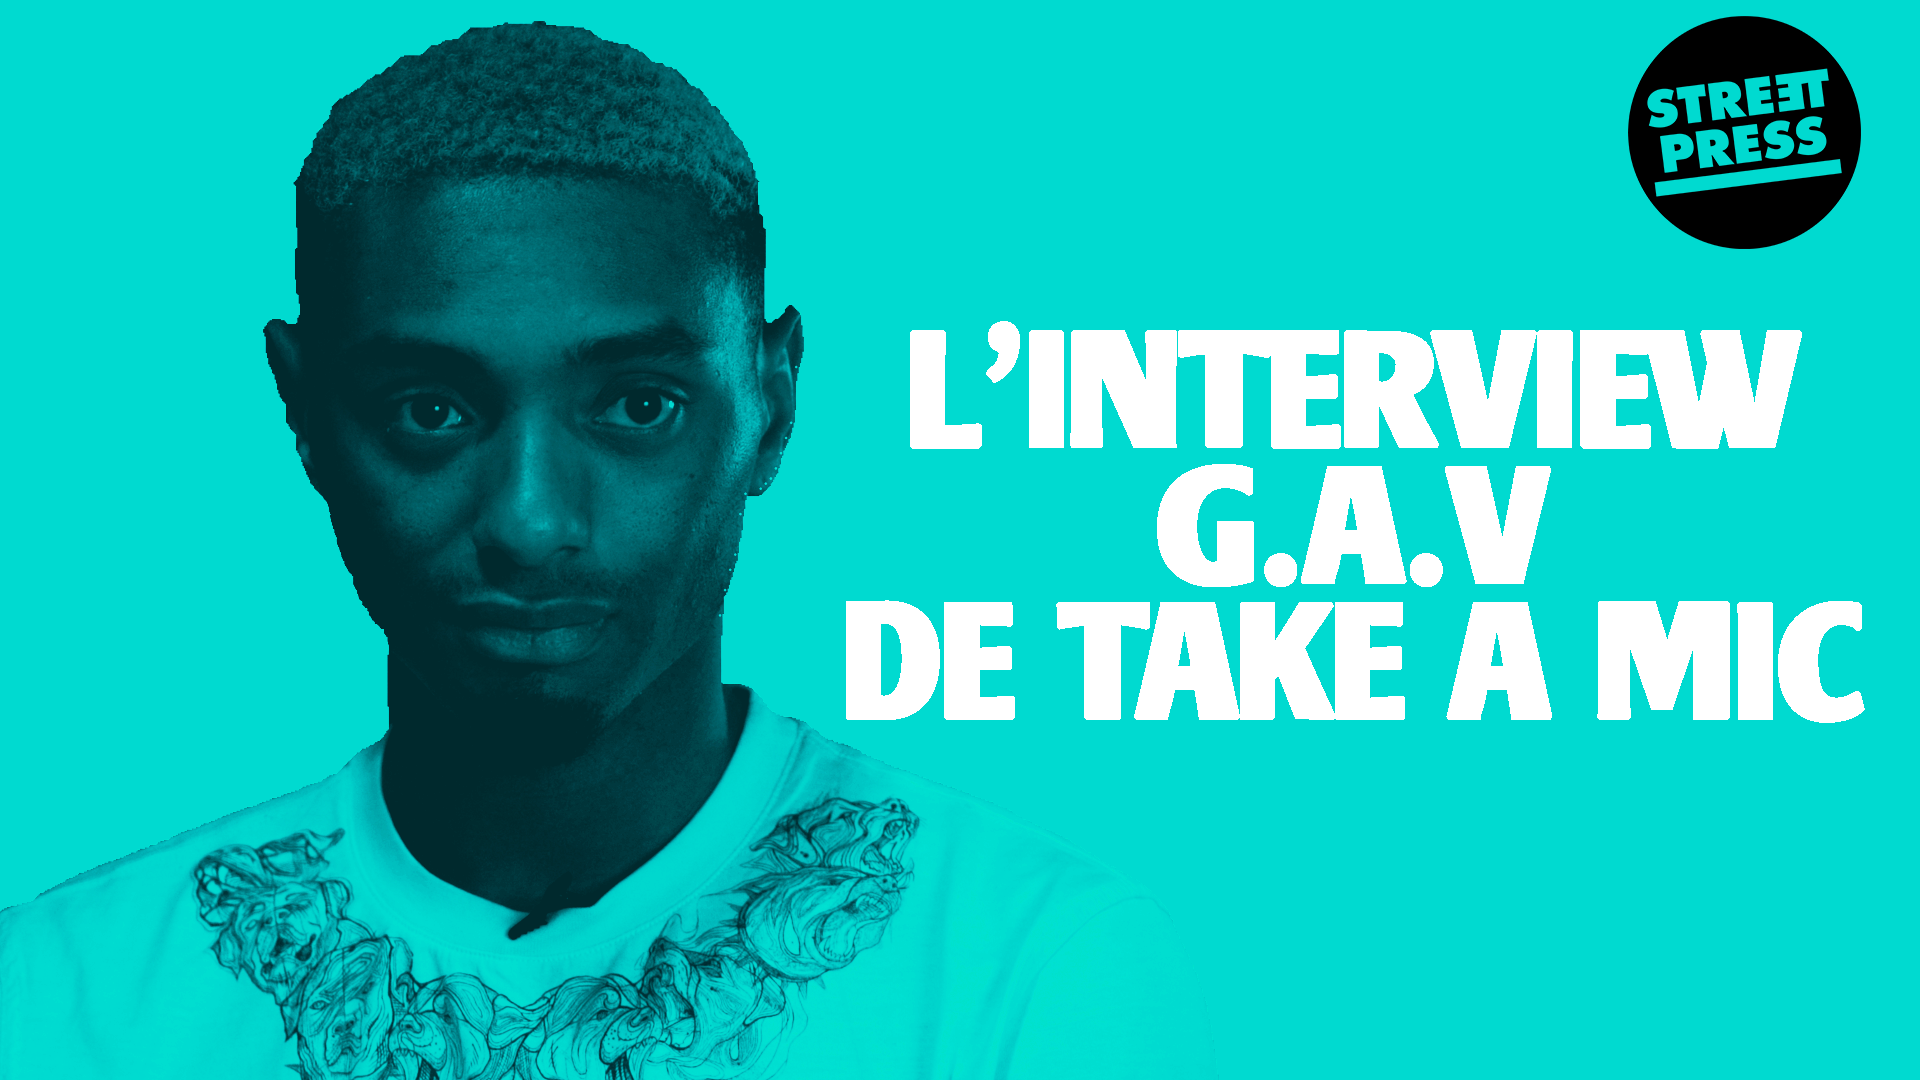 L'interview G.A.V de Take A Mic